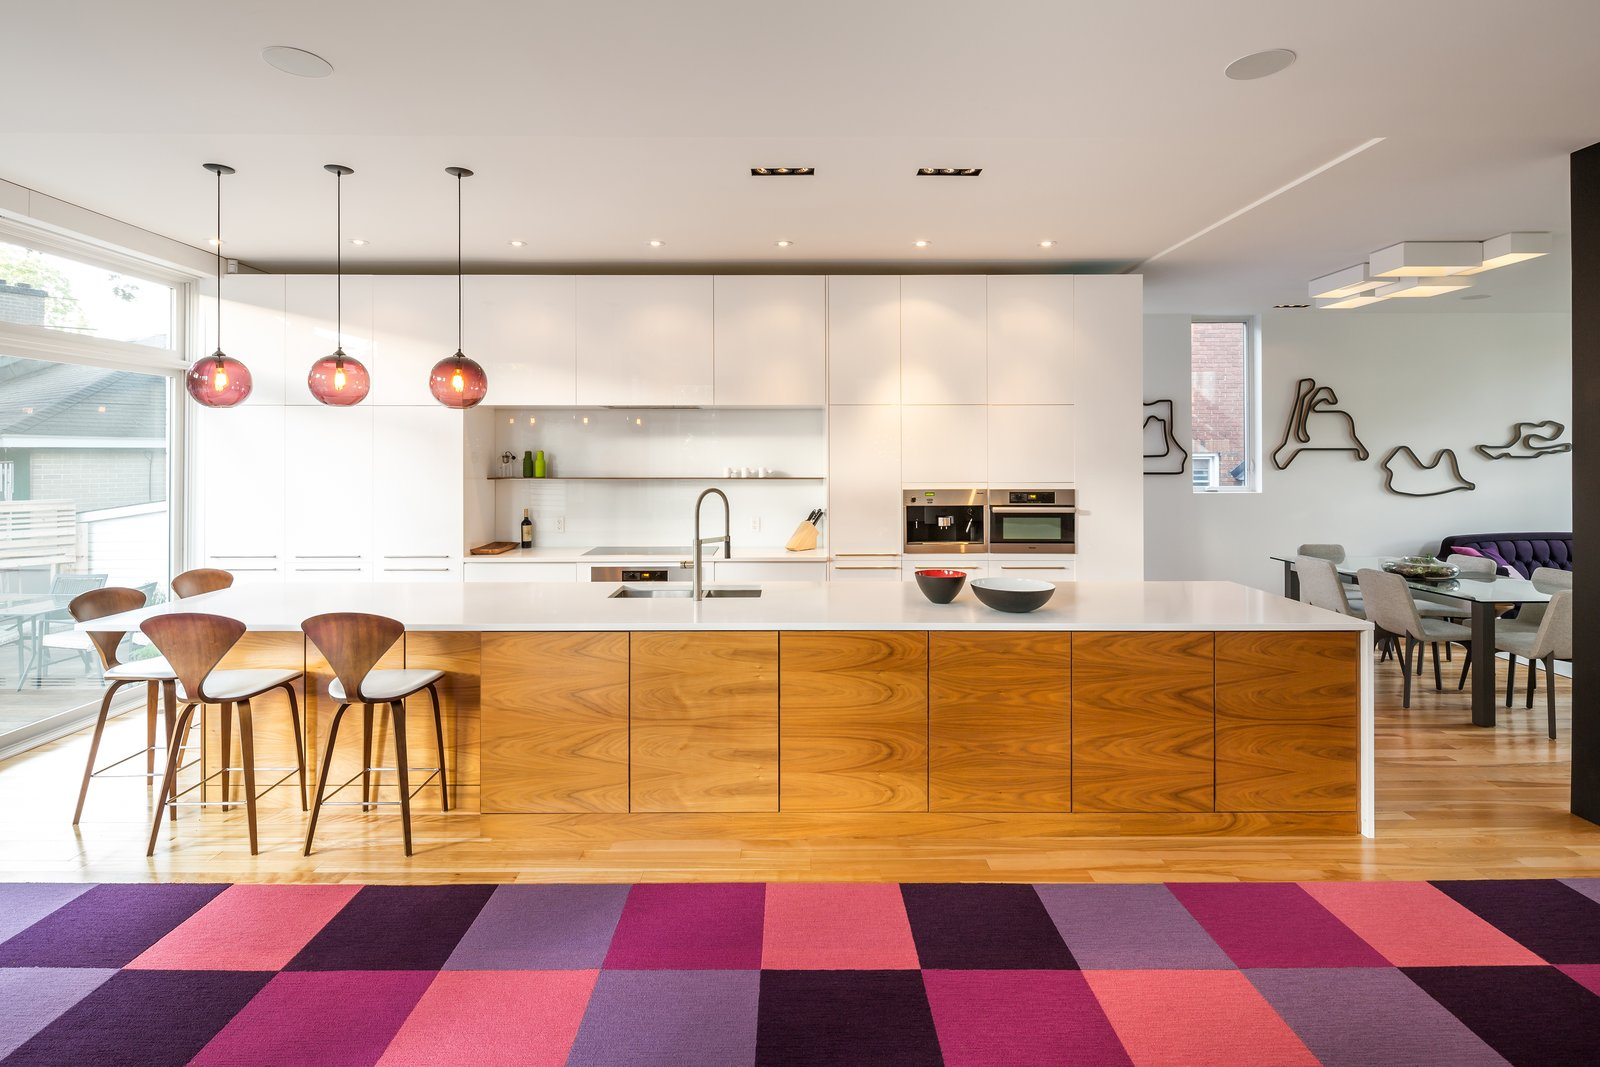 Plum Modern Pendant Lighting Adds Pop of Color in Canadian Kitchen - Photo 1 of 5